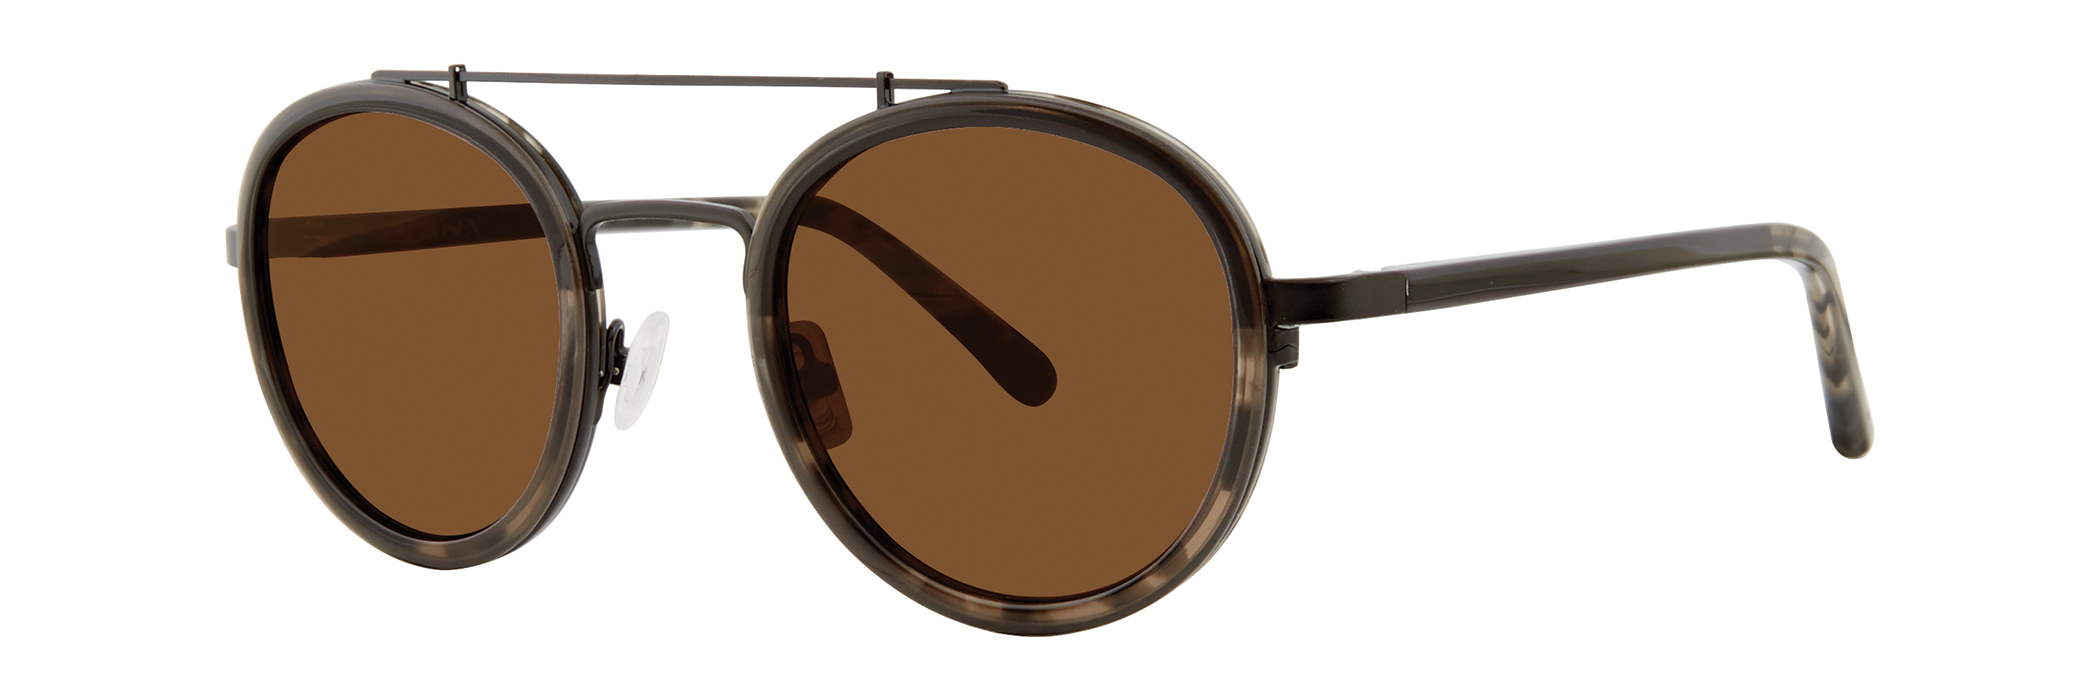 Zac Posen 'Kane' // round combination style featuring a top bar and metal temples